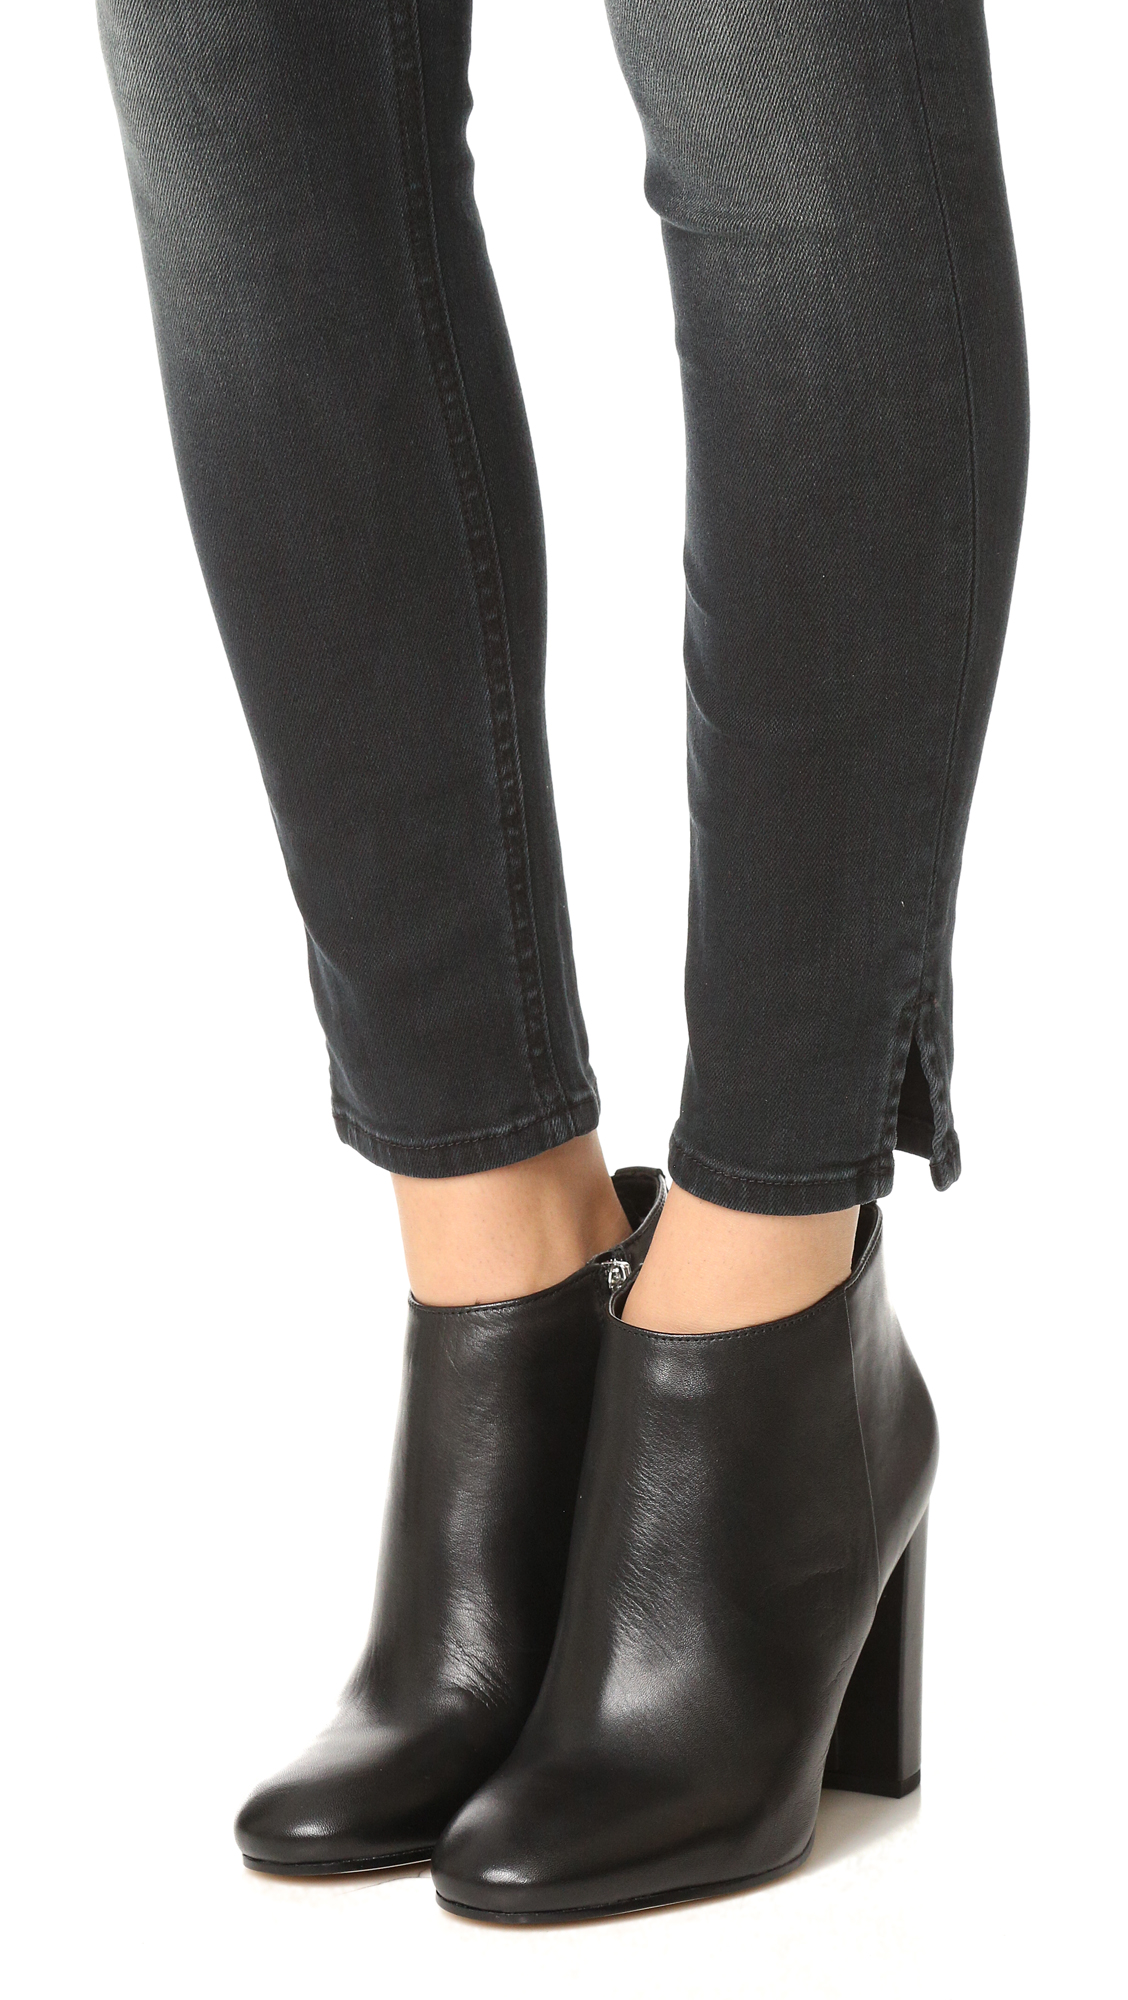 8f2b2cd9b91dce Sam Edelman Cambell Booties